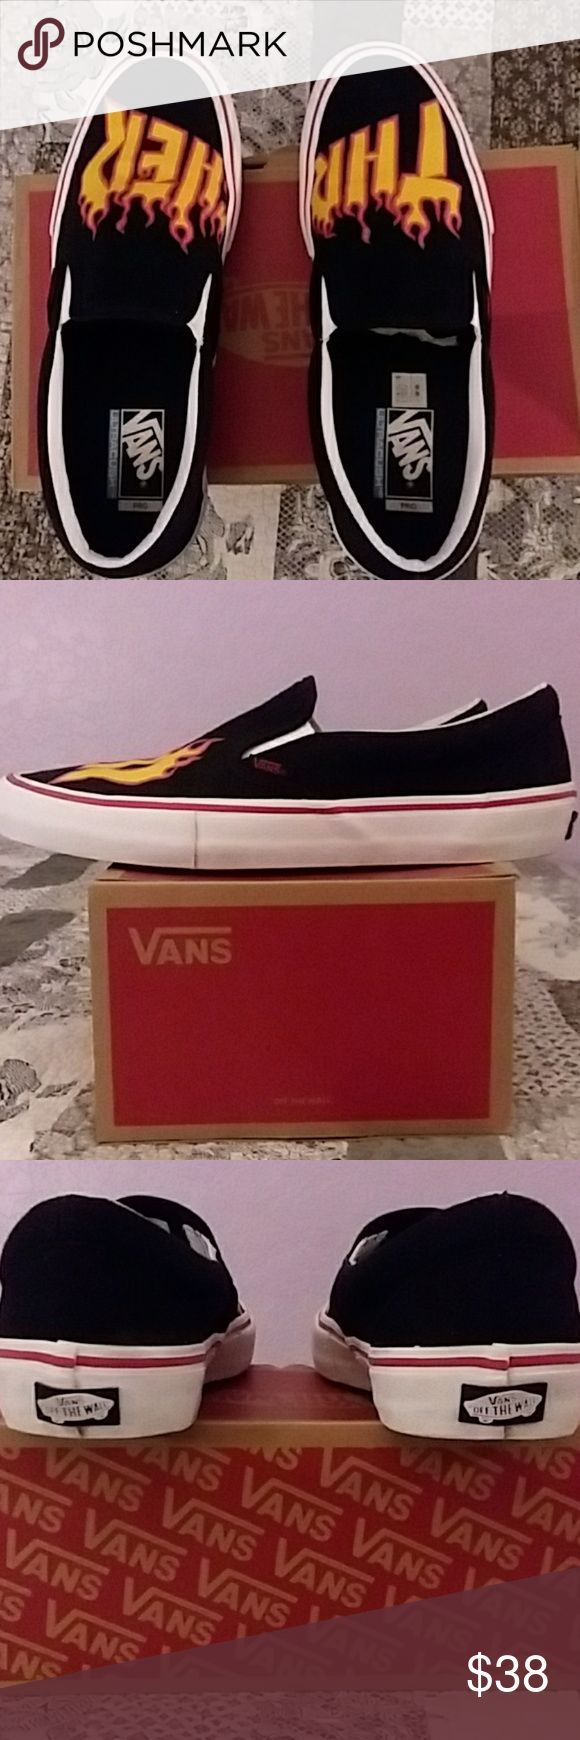 Thrasher x Vans Slip On Excellent Preowned condition only worn 4-5 times. No major flaws. Thrasher x Vans Slip On Pro in size 10.5 Vans Shoes Sneakers